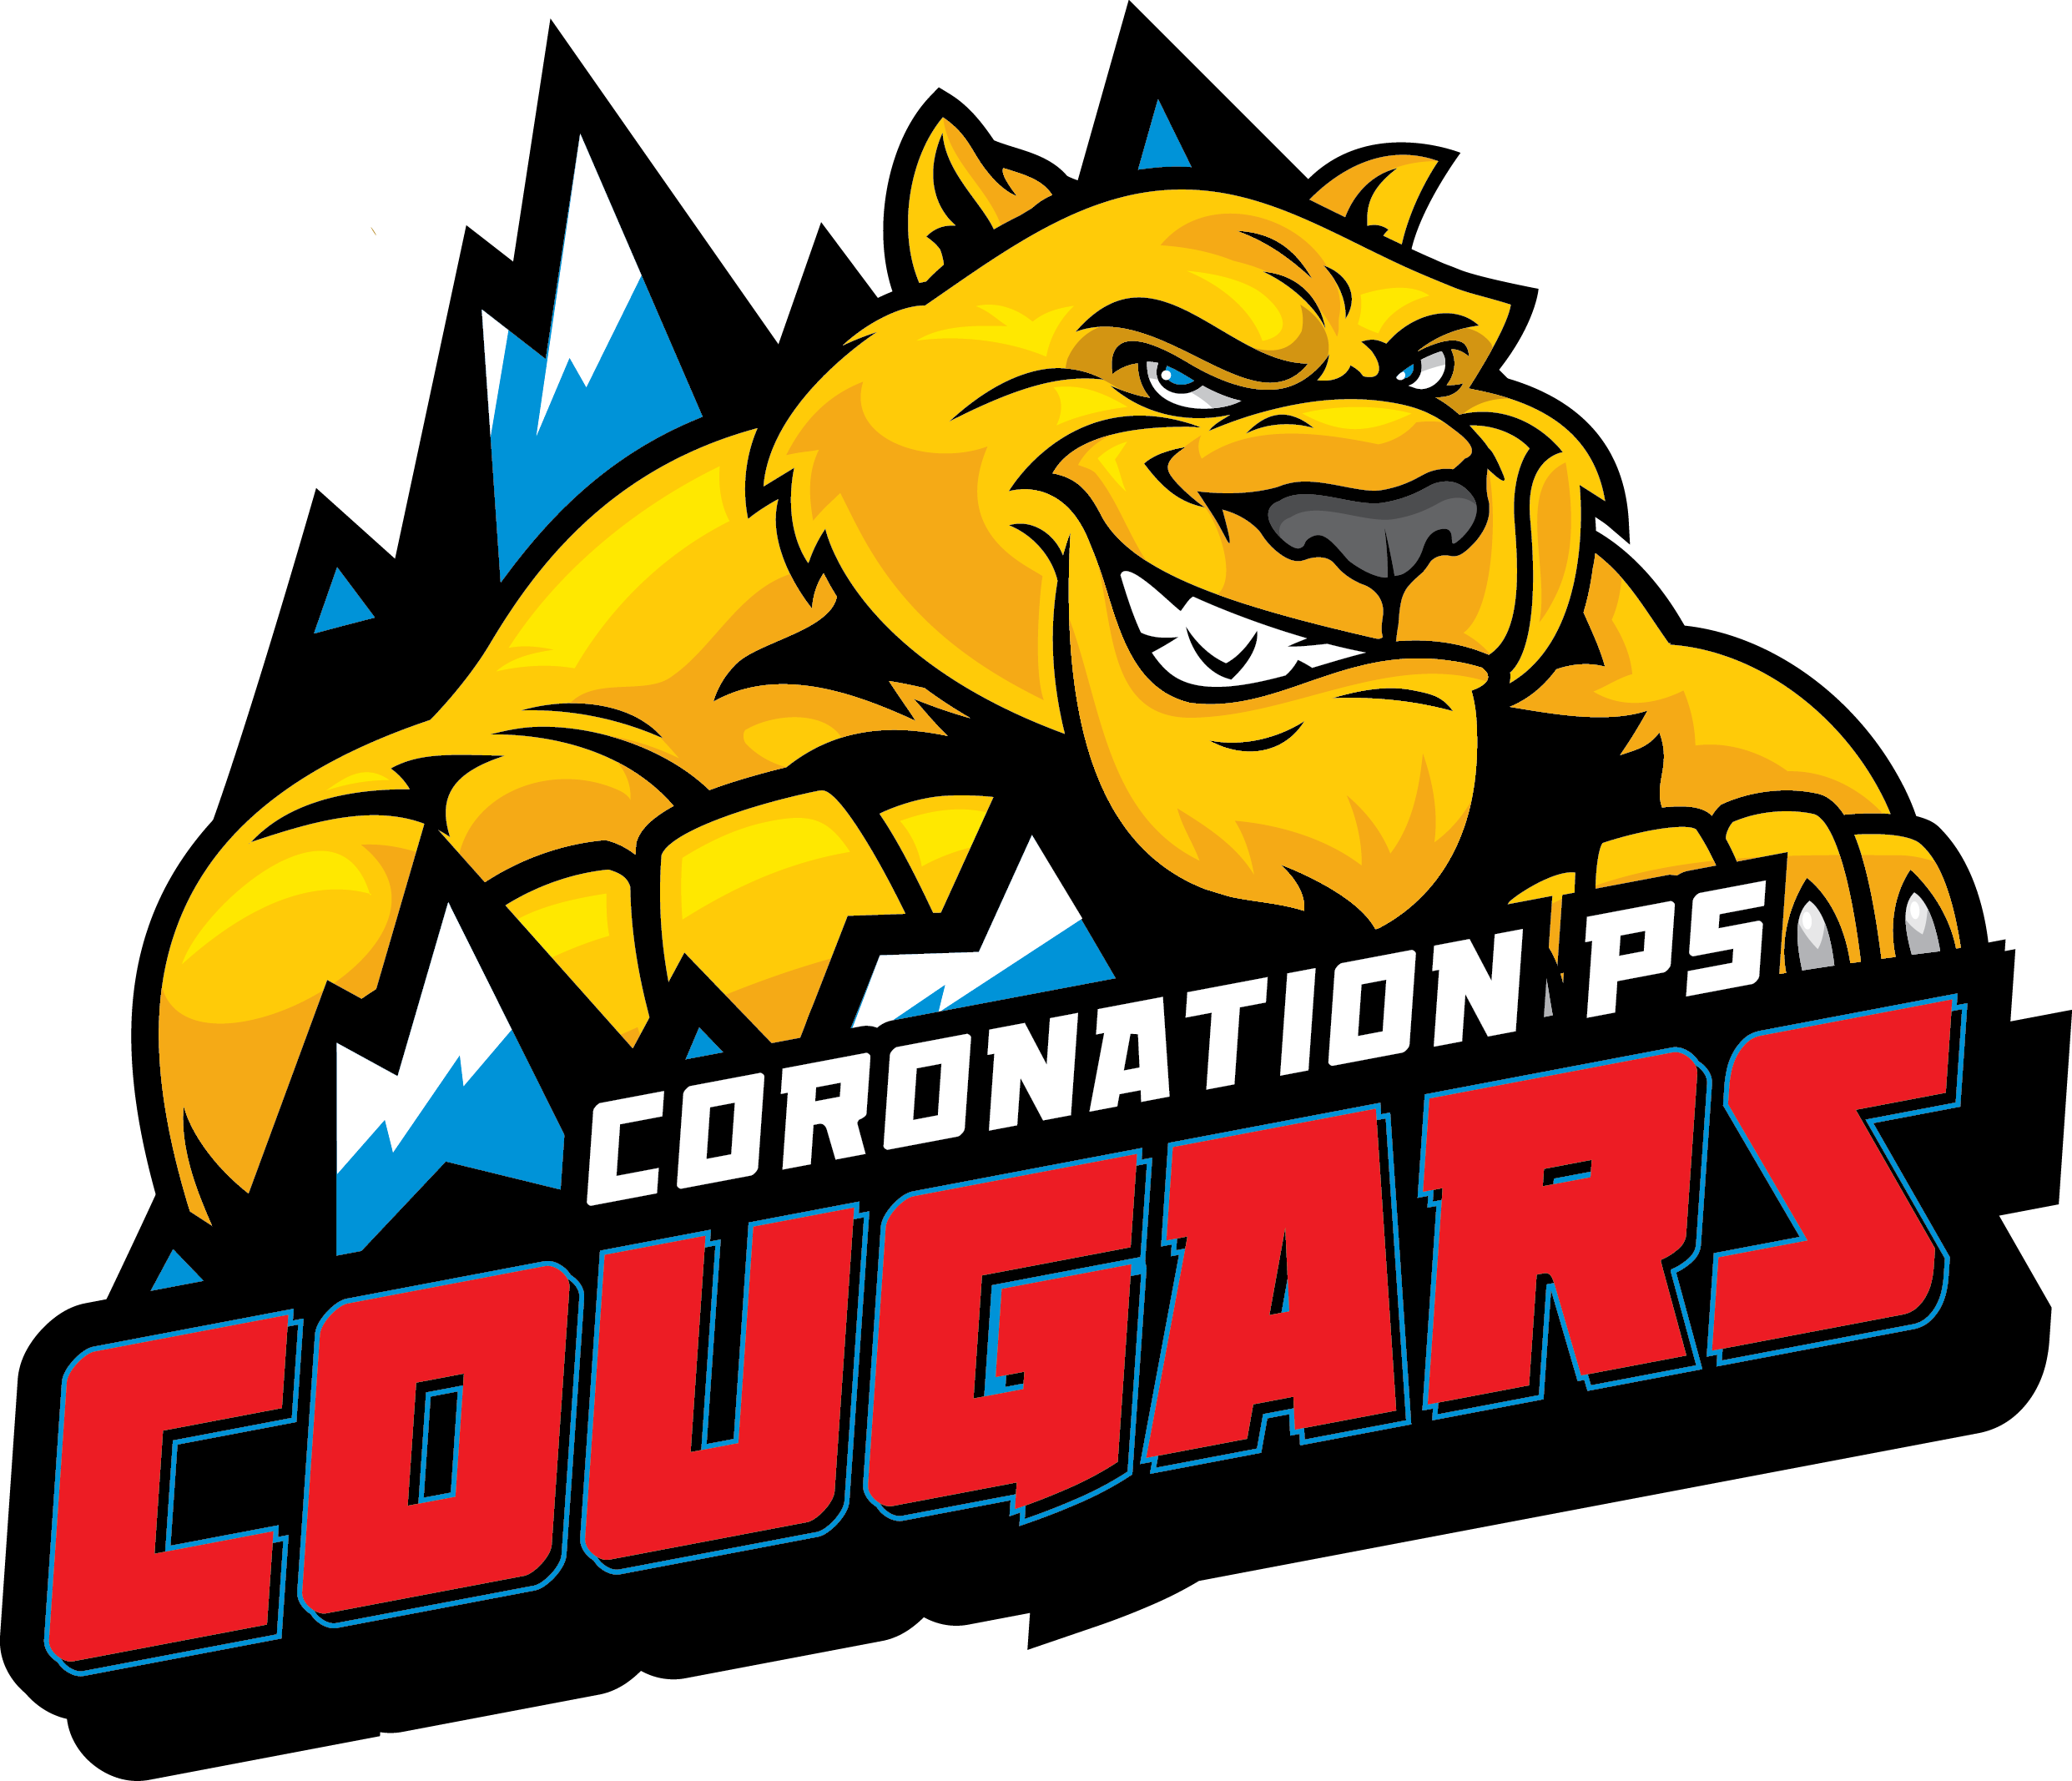 Coronation Public School logo